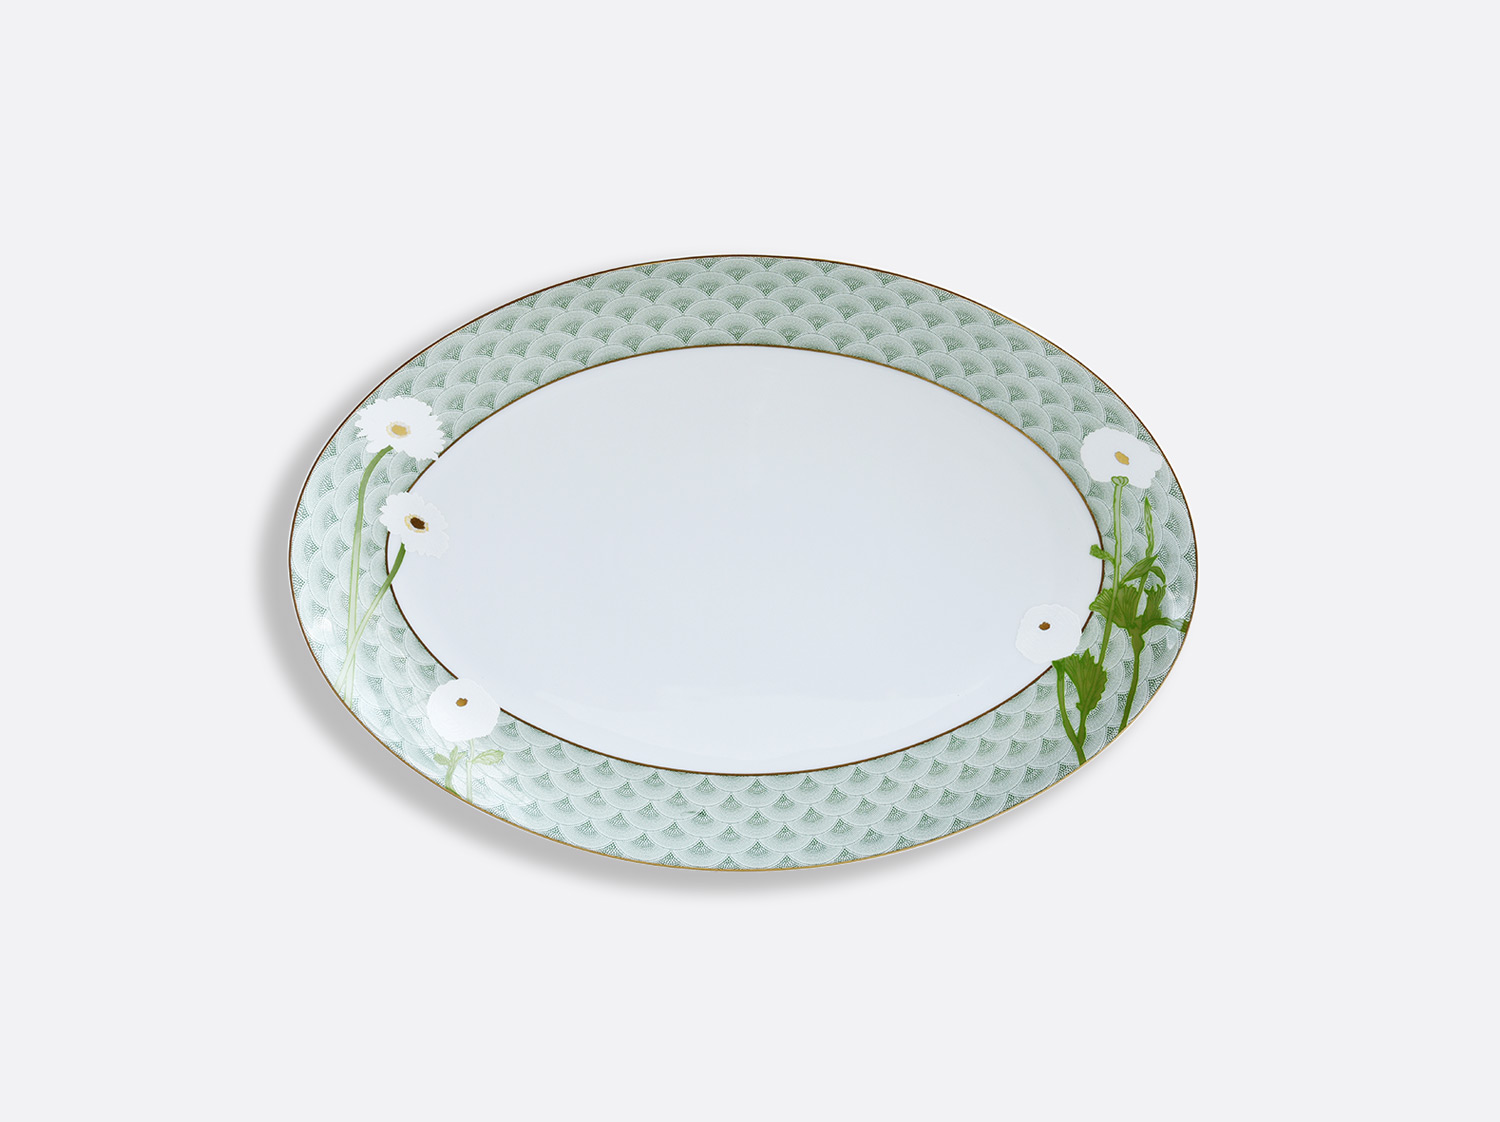 Plat ovale 38 cm en porcelaine de la collection PRAIANA Bernardaud